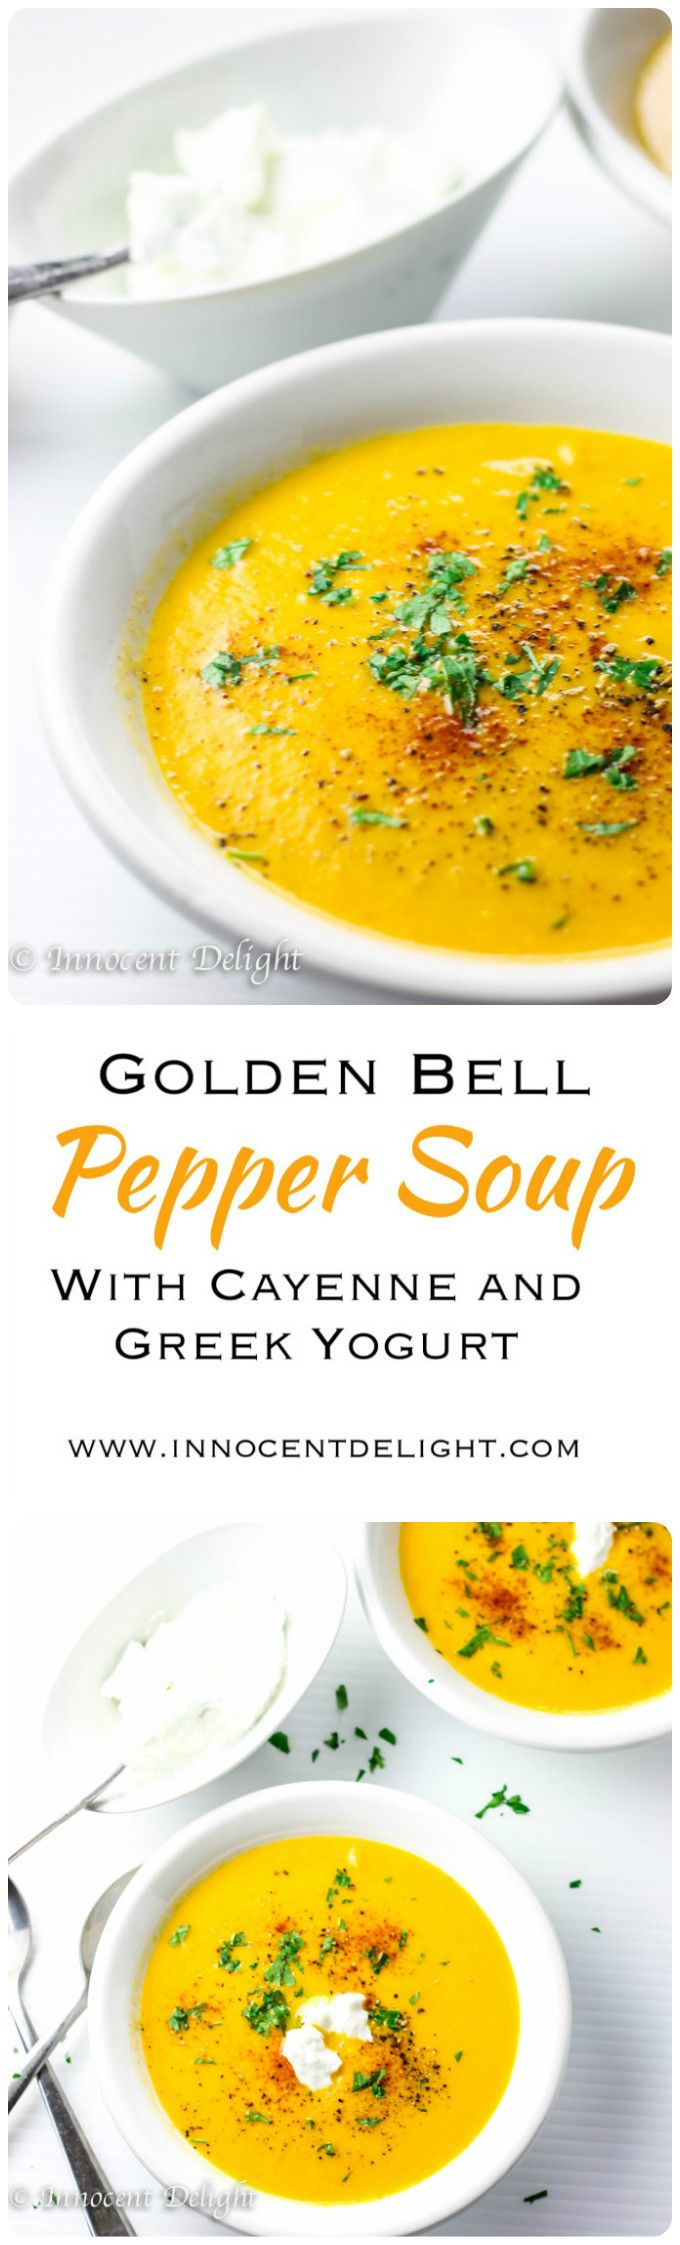 Golden Bell Pepper Soup with Cayenne and Greek Yogurt.